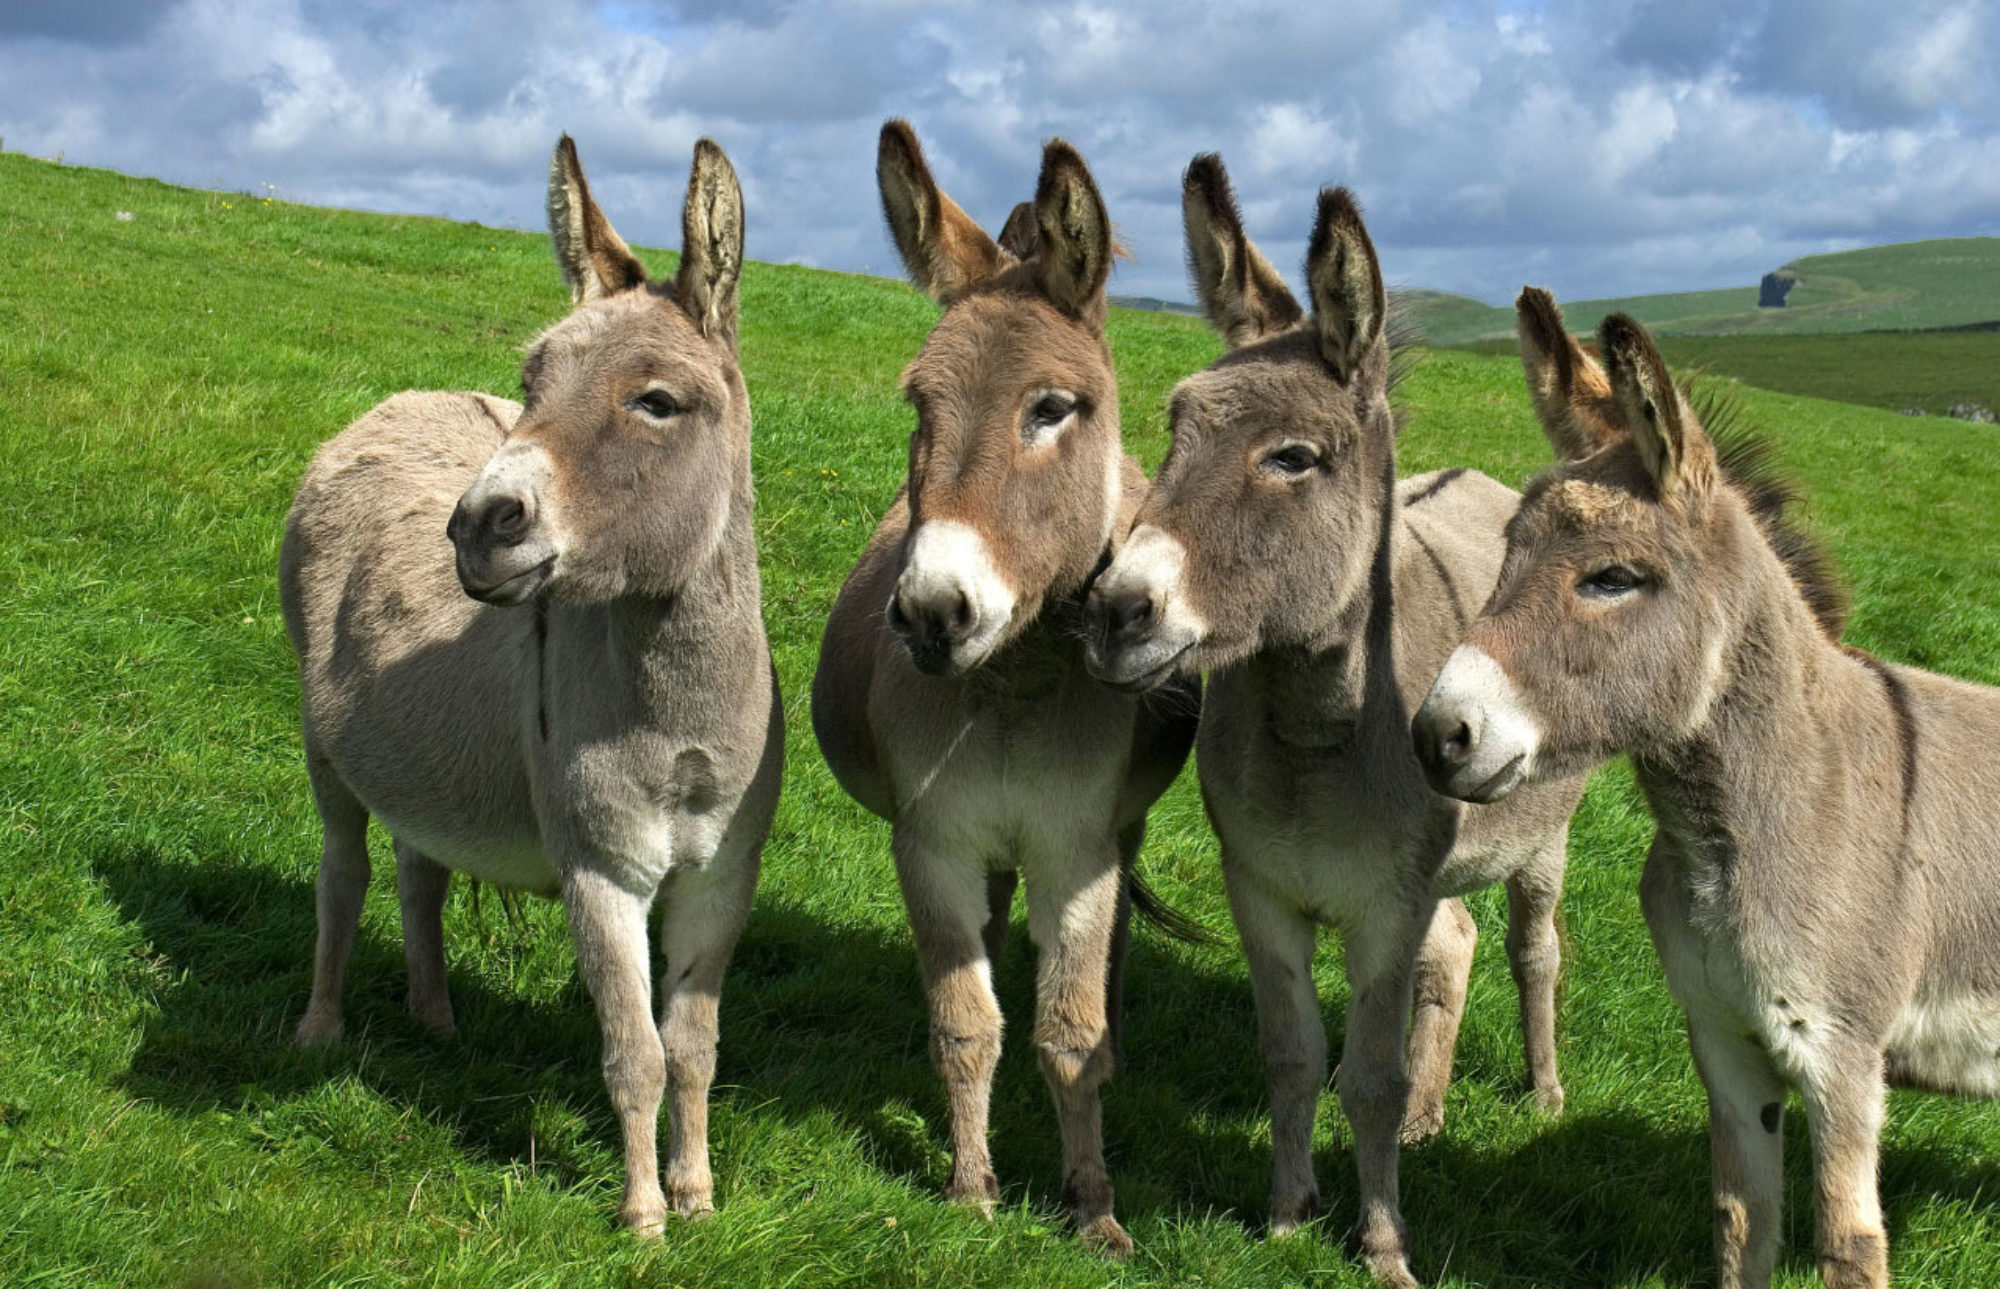 Don't forget donkeys